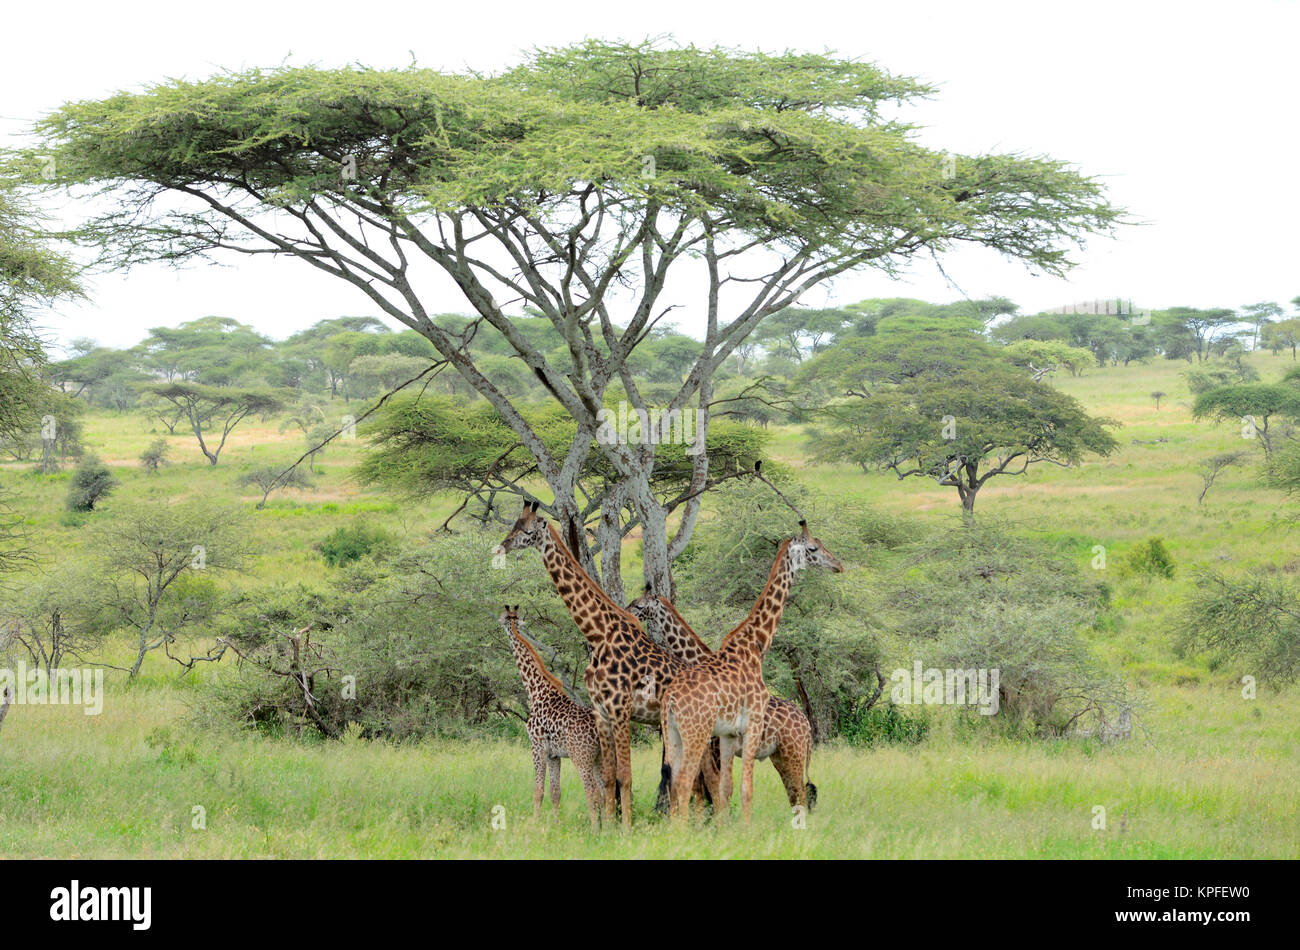 Wildlife sightseeing in one of the prime wildlife destinations on earht -- Serengeti, Tanzania. Giraffe herd under - Stock Image